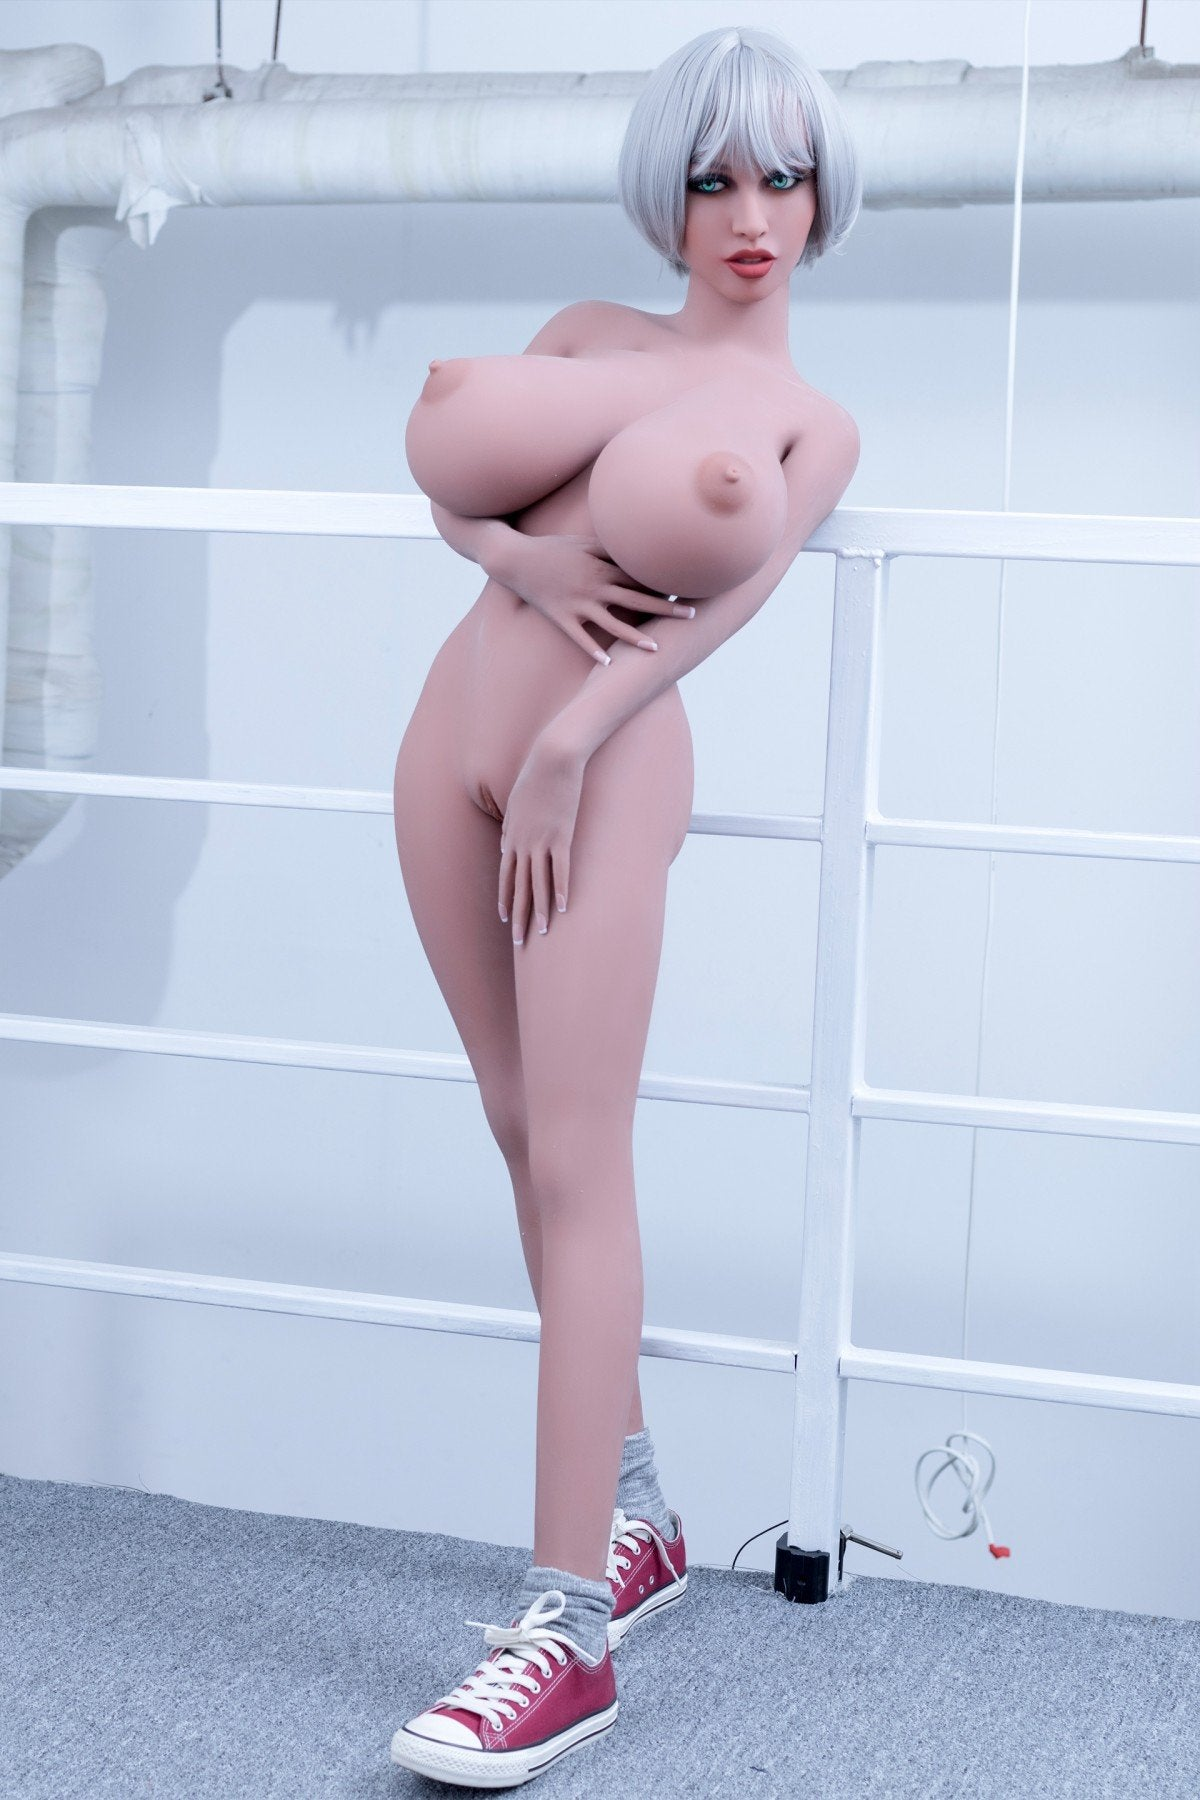 lavelle 148cm blonde giant massive tits athletic tpe wm bbw small sex doll(9)